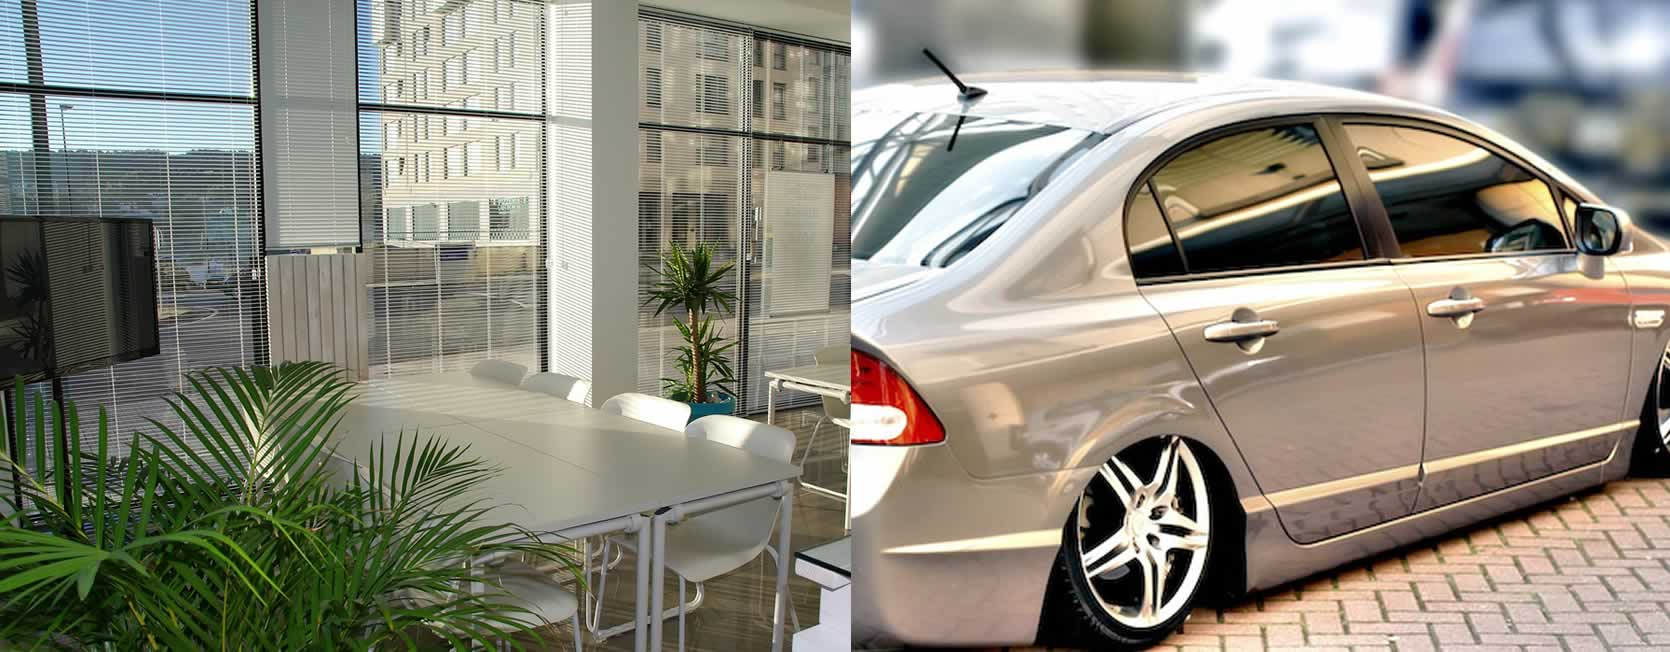 Commercial, Residential and Automotive Tinting